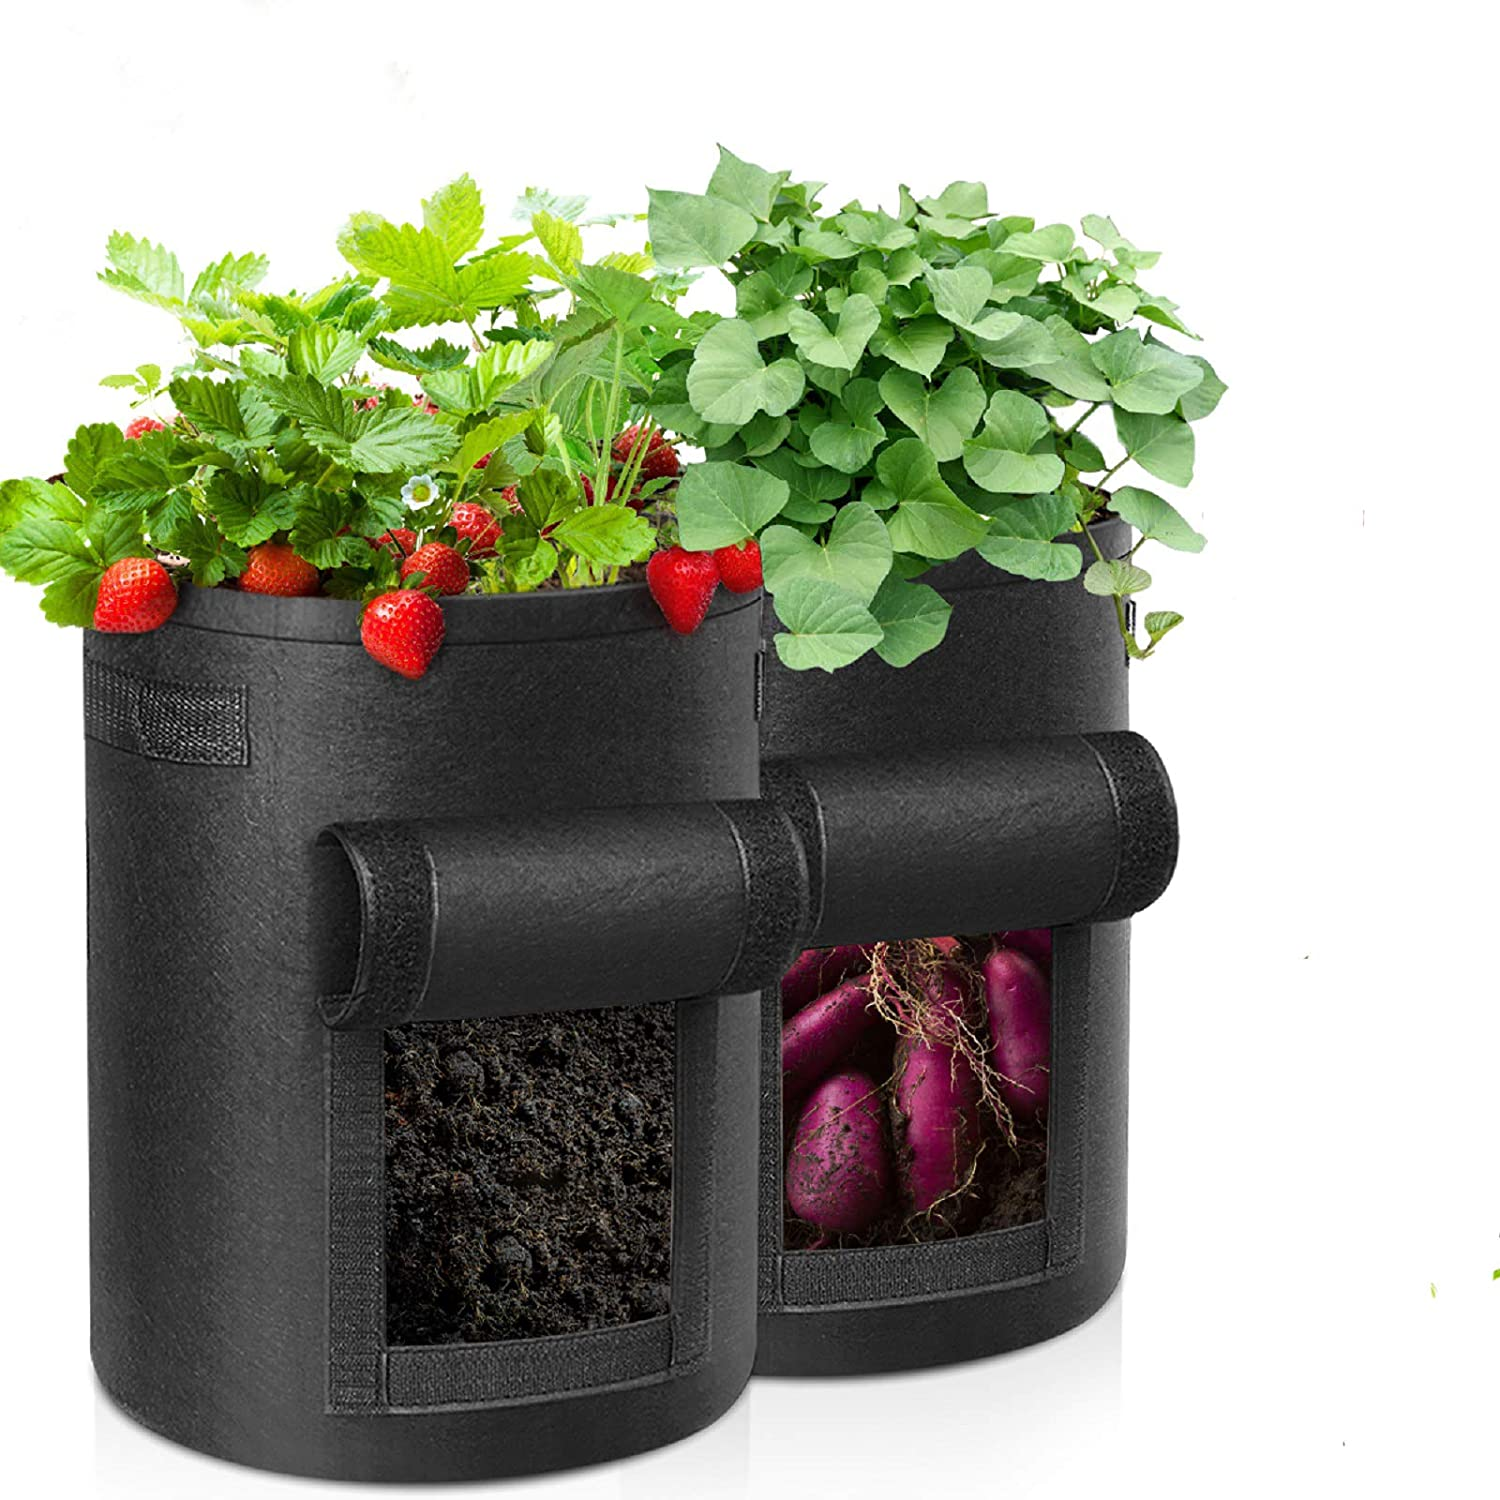 Safe2m Grow Bags, Plant Grow Bags 10 Gallon Heavy Duty Thickened Growing Bags Planting Pots Container Garden Vegetable Planter with Handles & Large Harvest Window